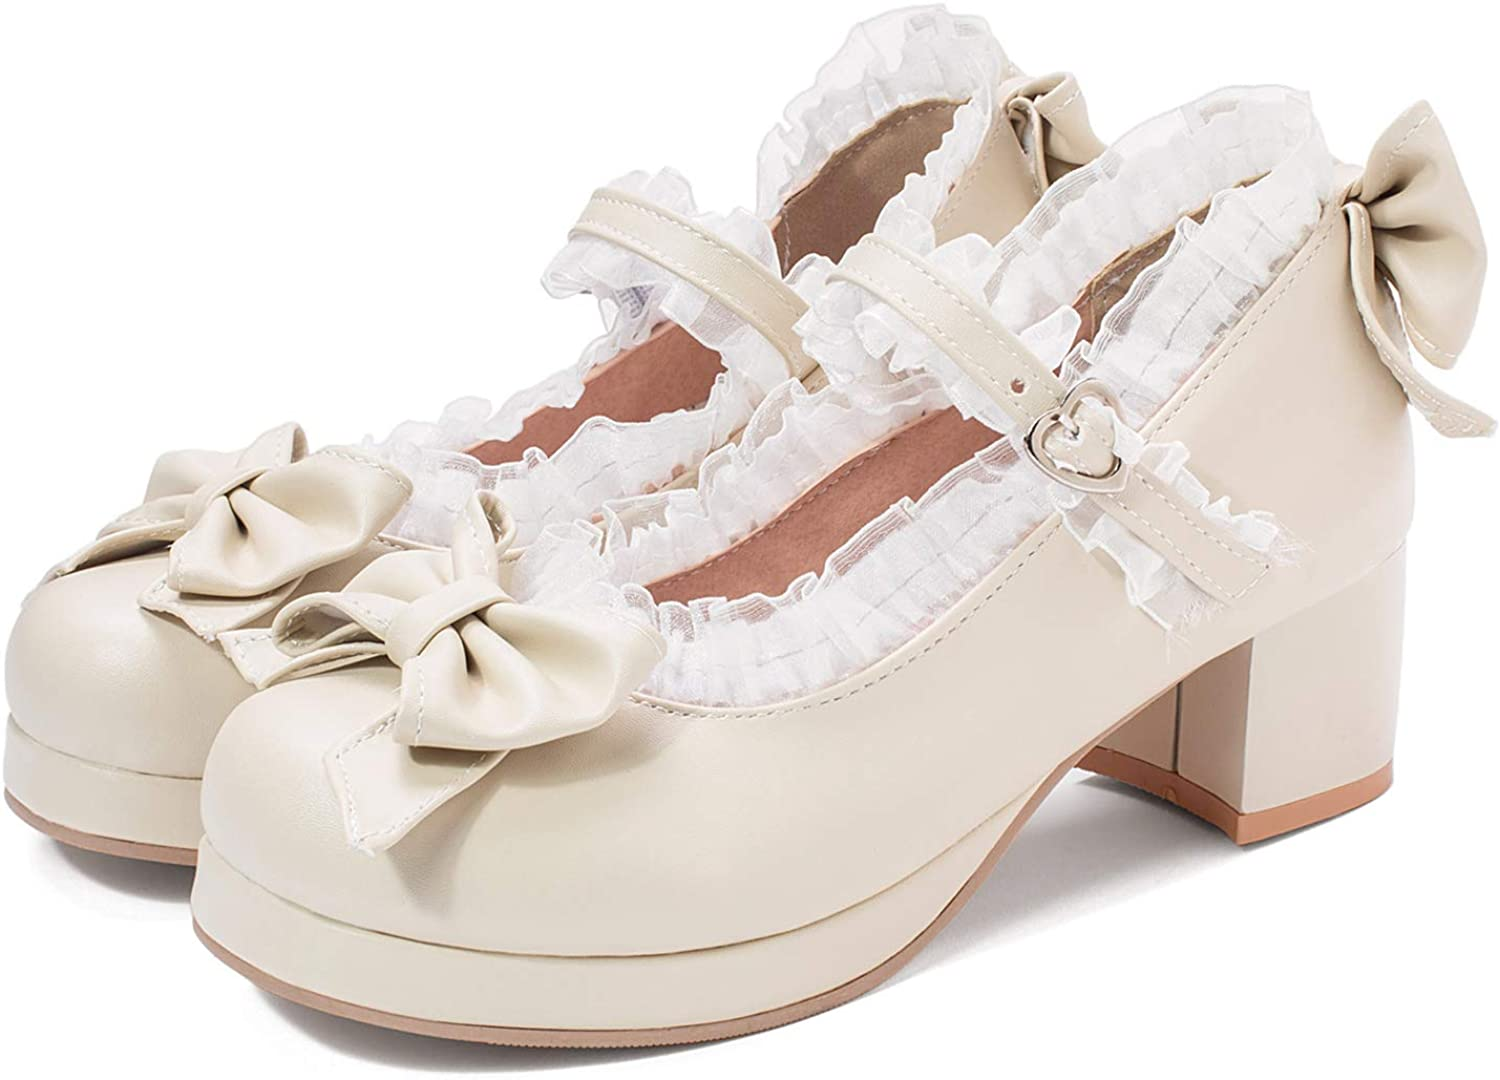 Details about  /Women Brogue Lolita Ankle Strap Bowknot Round Toe Chunky Heel Mary Janes Pumps D